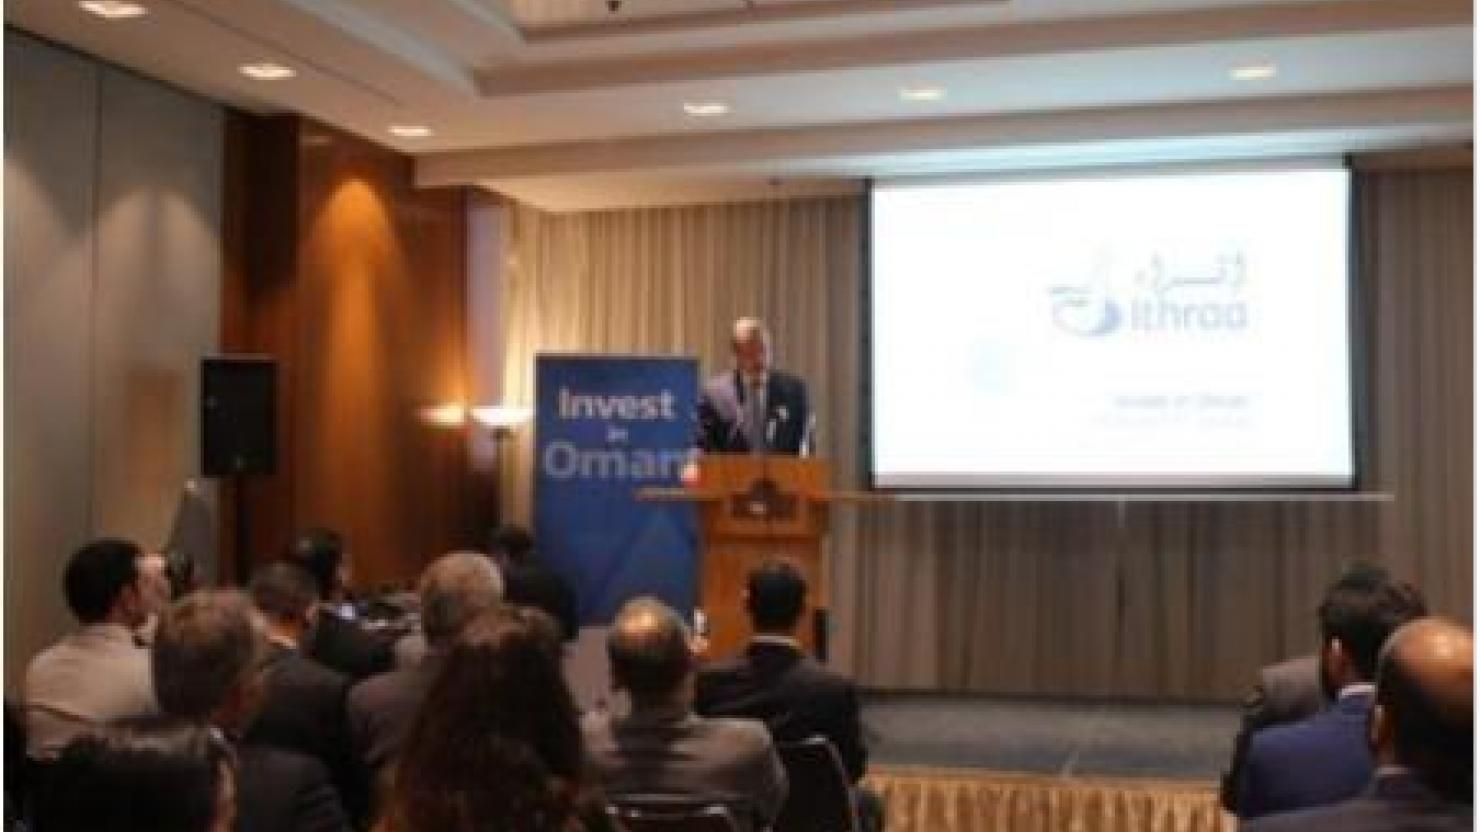 Omani delegation to showcase investment opportunities during London visit